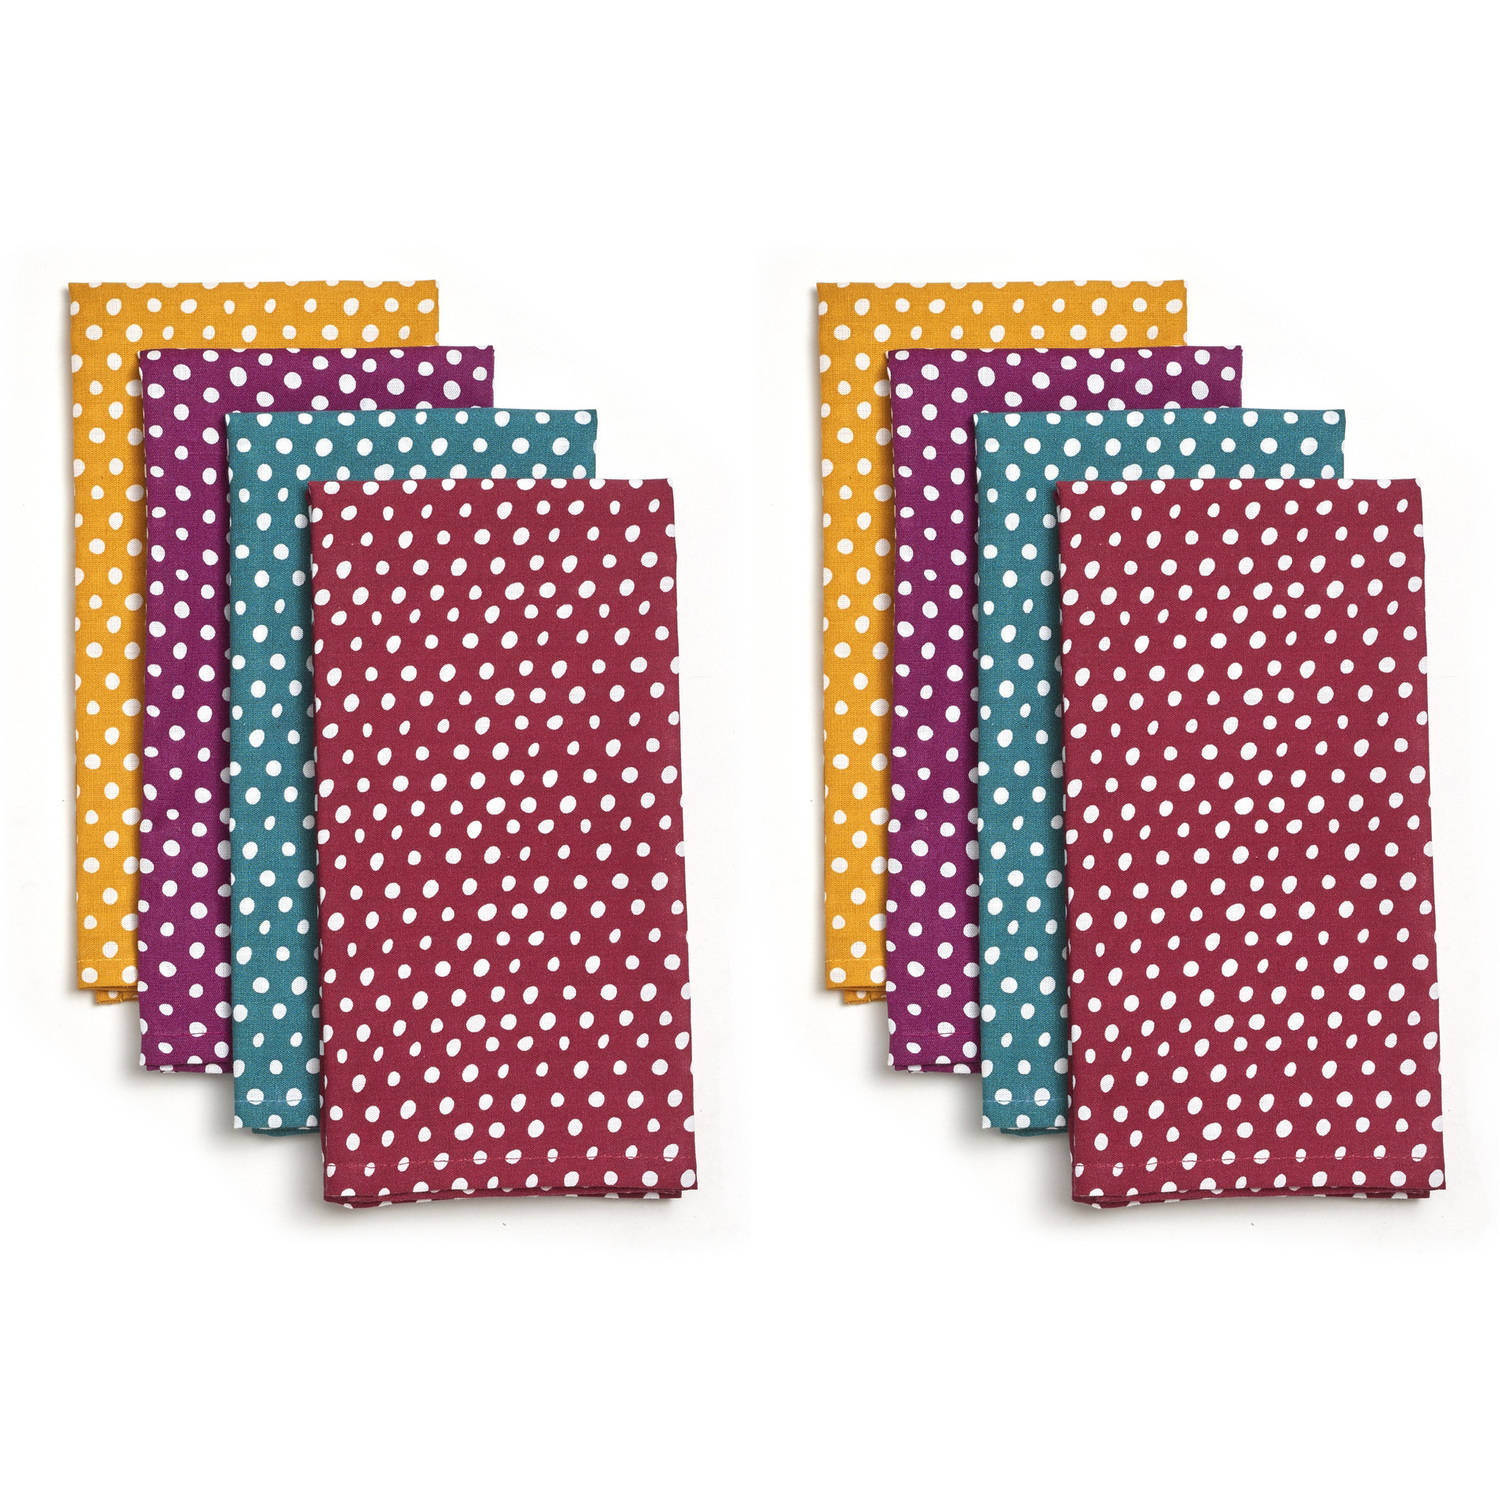 Pioneer Woman Retro Dot Napkins, Pack of 8